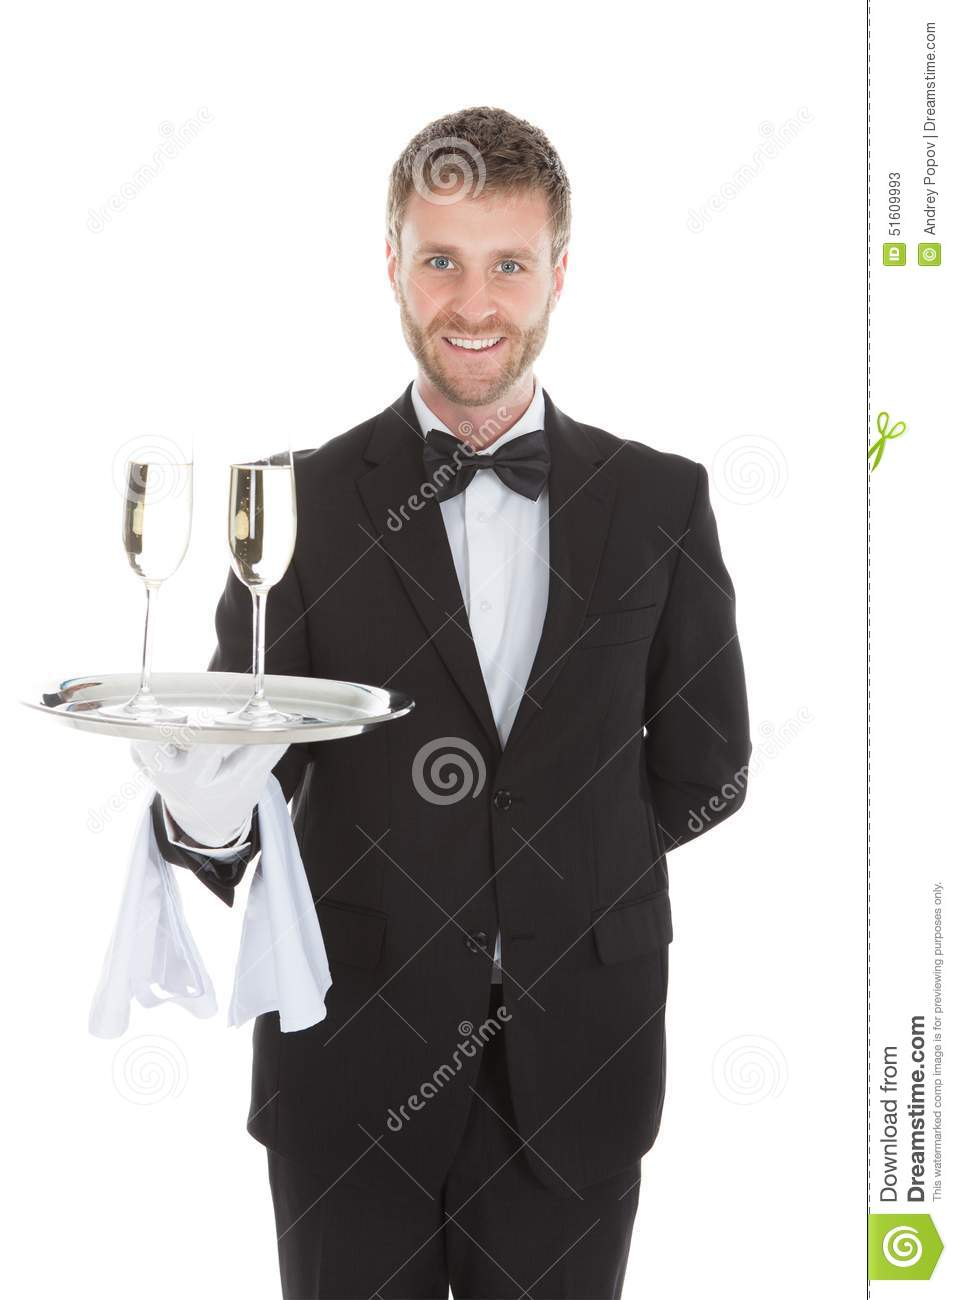 Confident waiter carrying champagne flutes on tray